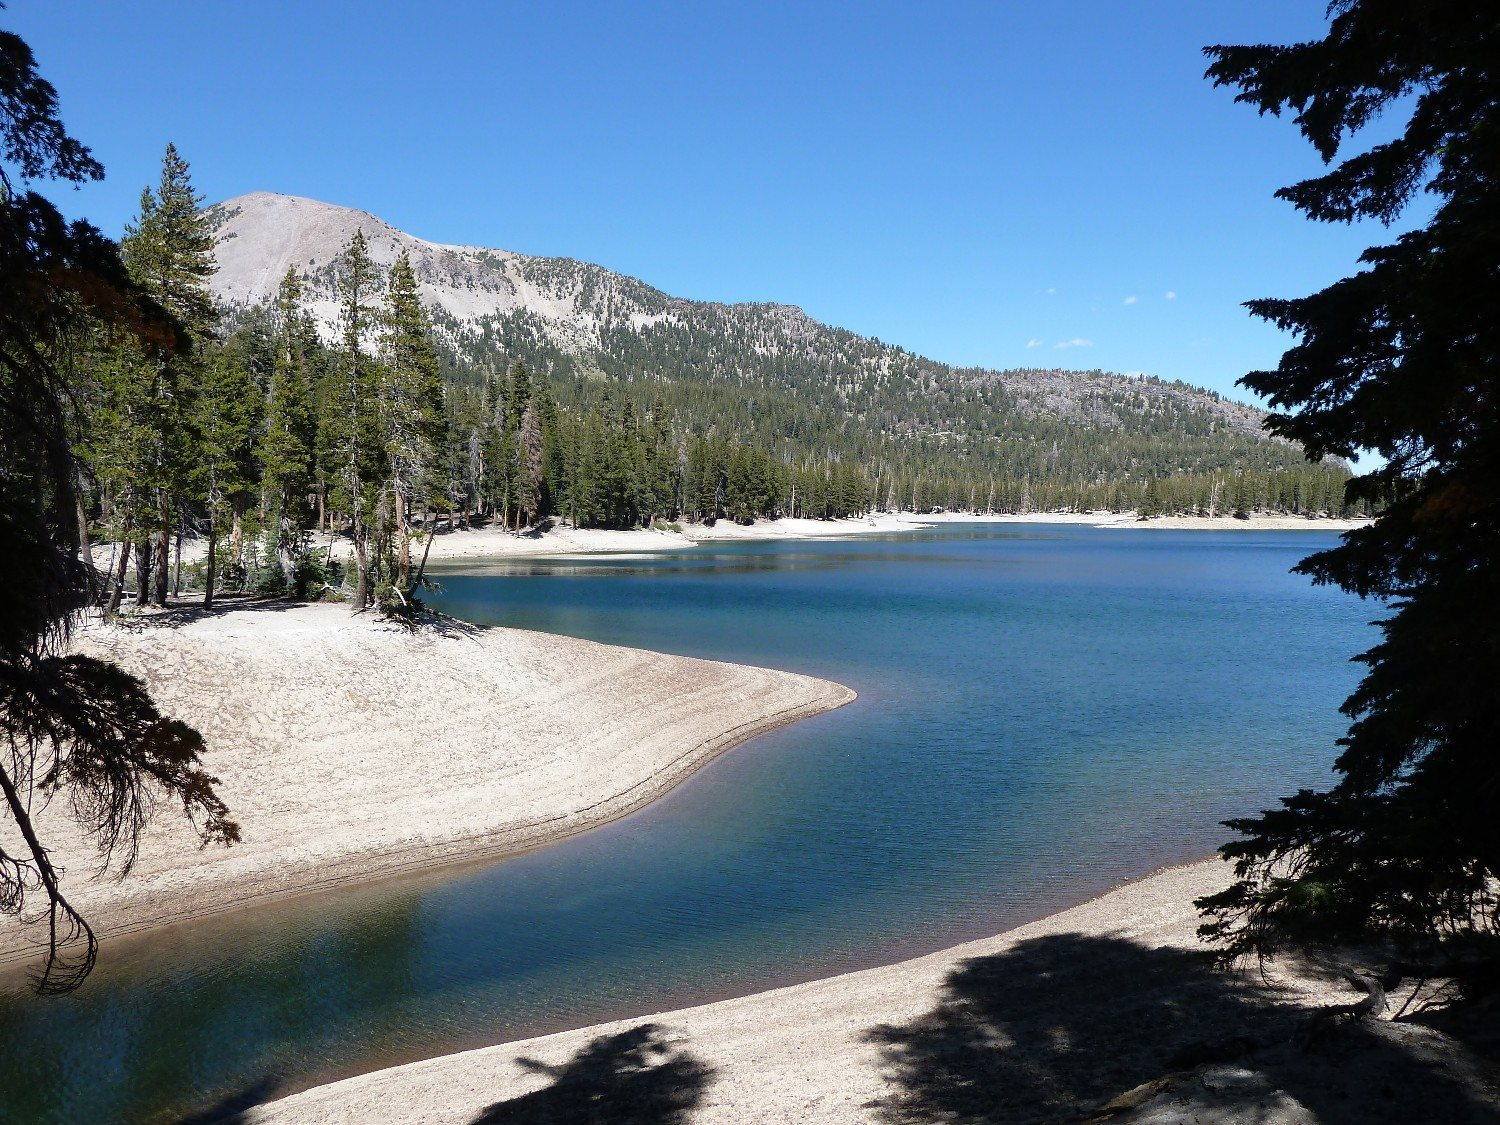 mammoth lakes personals Village at mammoth mountain is one of the best places to enjoy breathtaking views in mammoth lakes,  countryside beautiful places places to visit free personals.